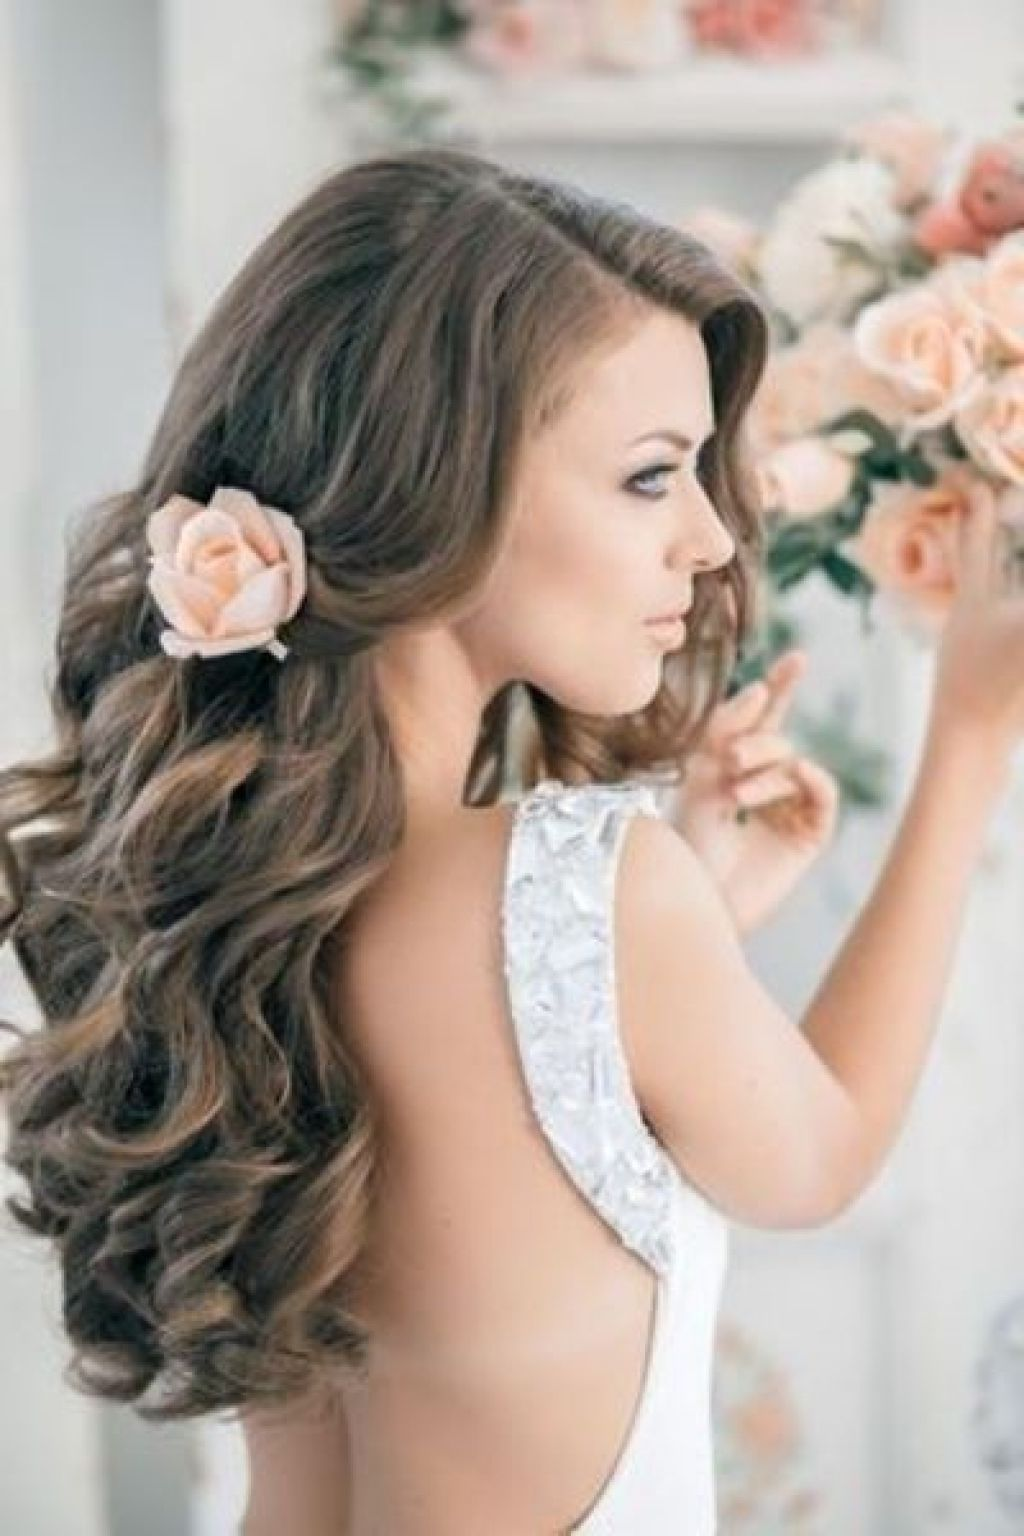 Hairstyle For Backless Dresses Ball Hairstyles Pinterest Wedding Dresses And Hairstyles Long Hair Wedding Styles Wavy Wedding Hair Long Hair Styles